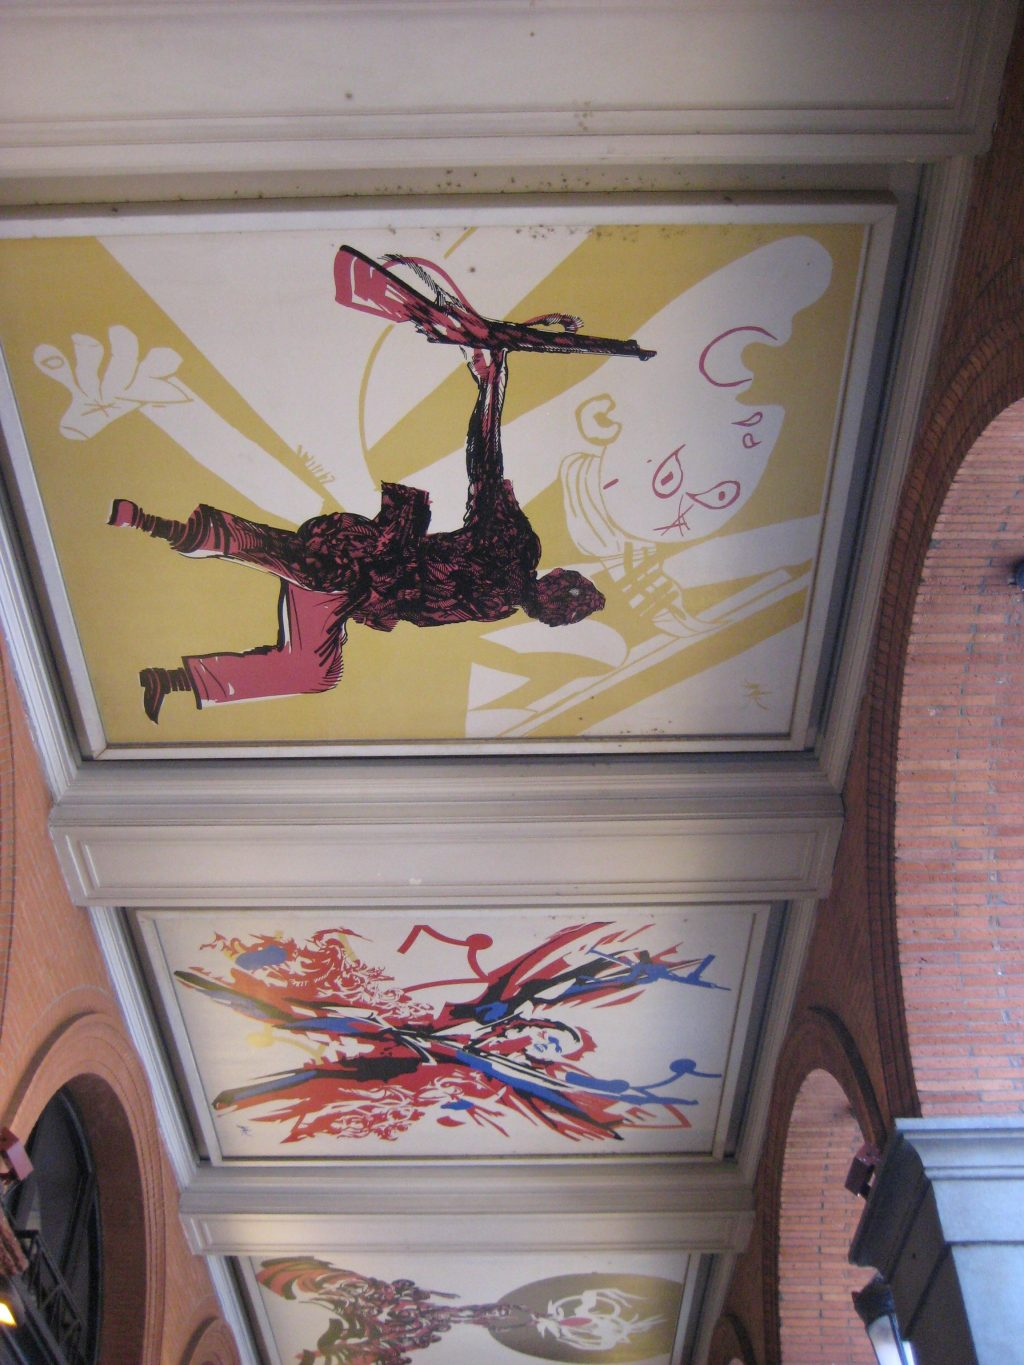 Paintings on the ceiling at Place du Capitole